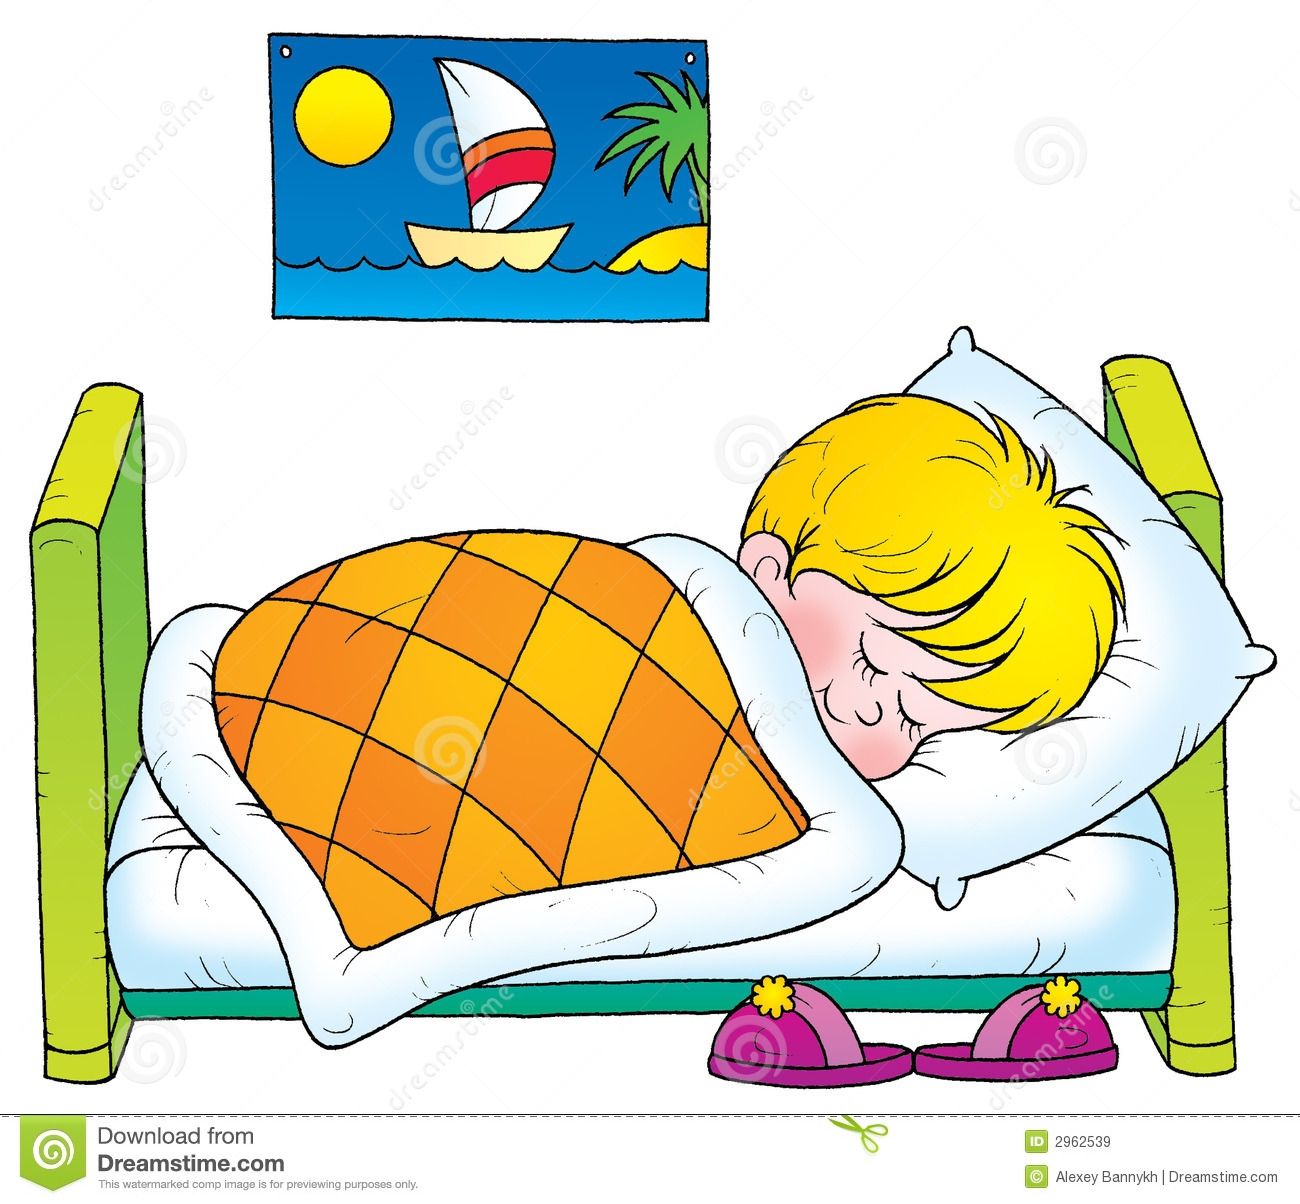 Collection of Resting clipart